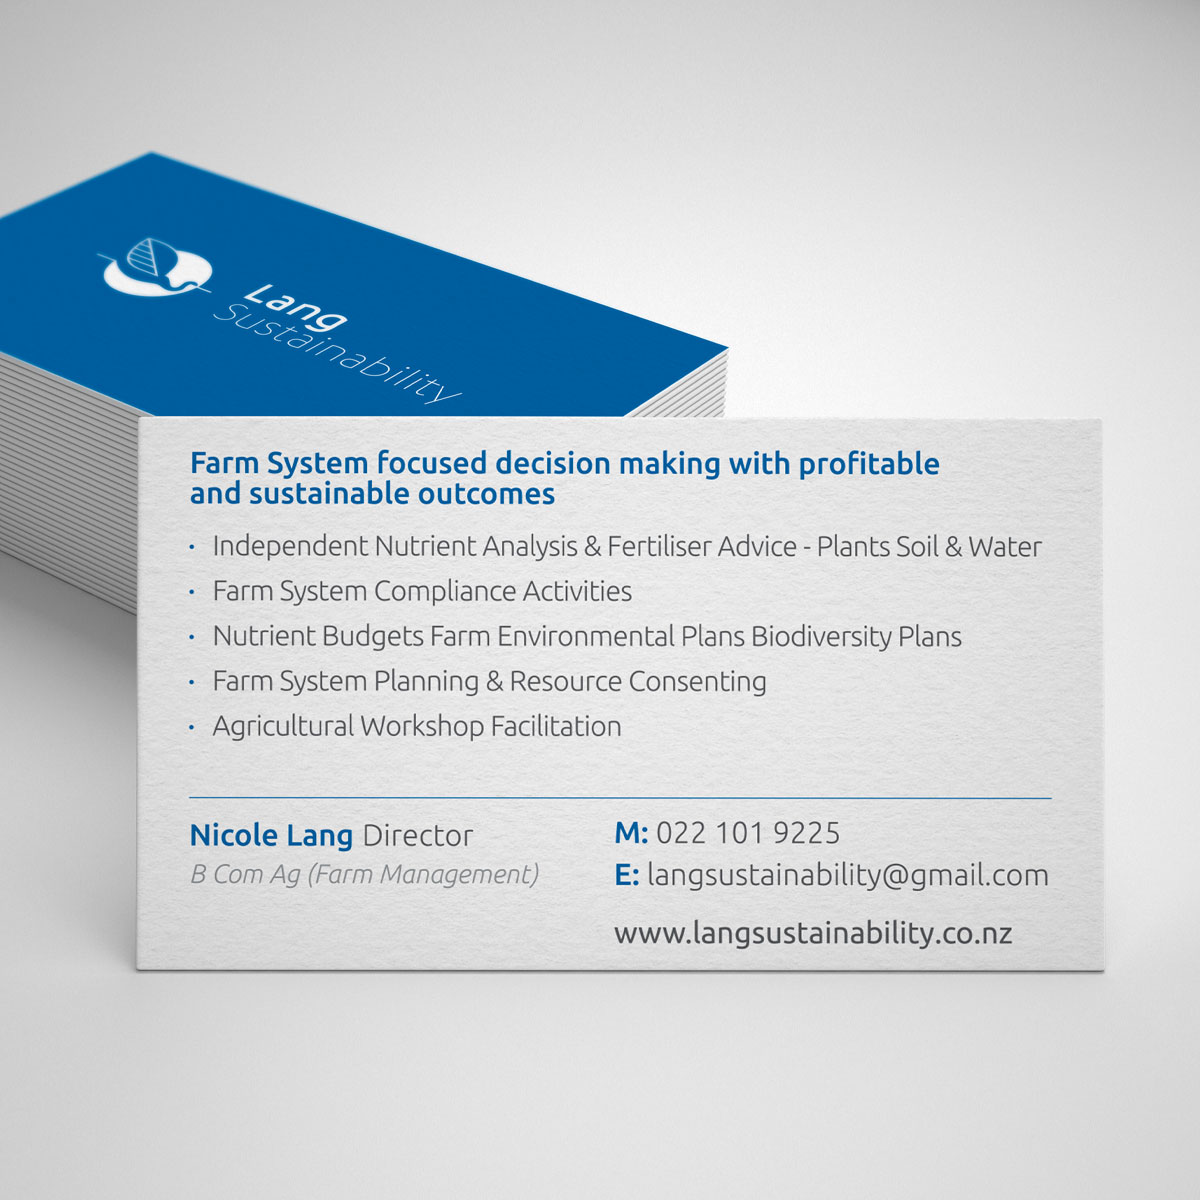 jfm-creatives-lang-sustainability-business-cards-1